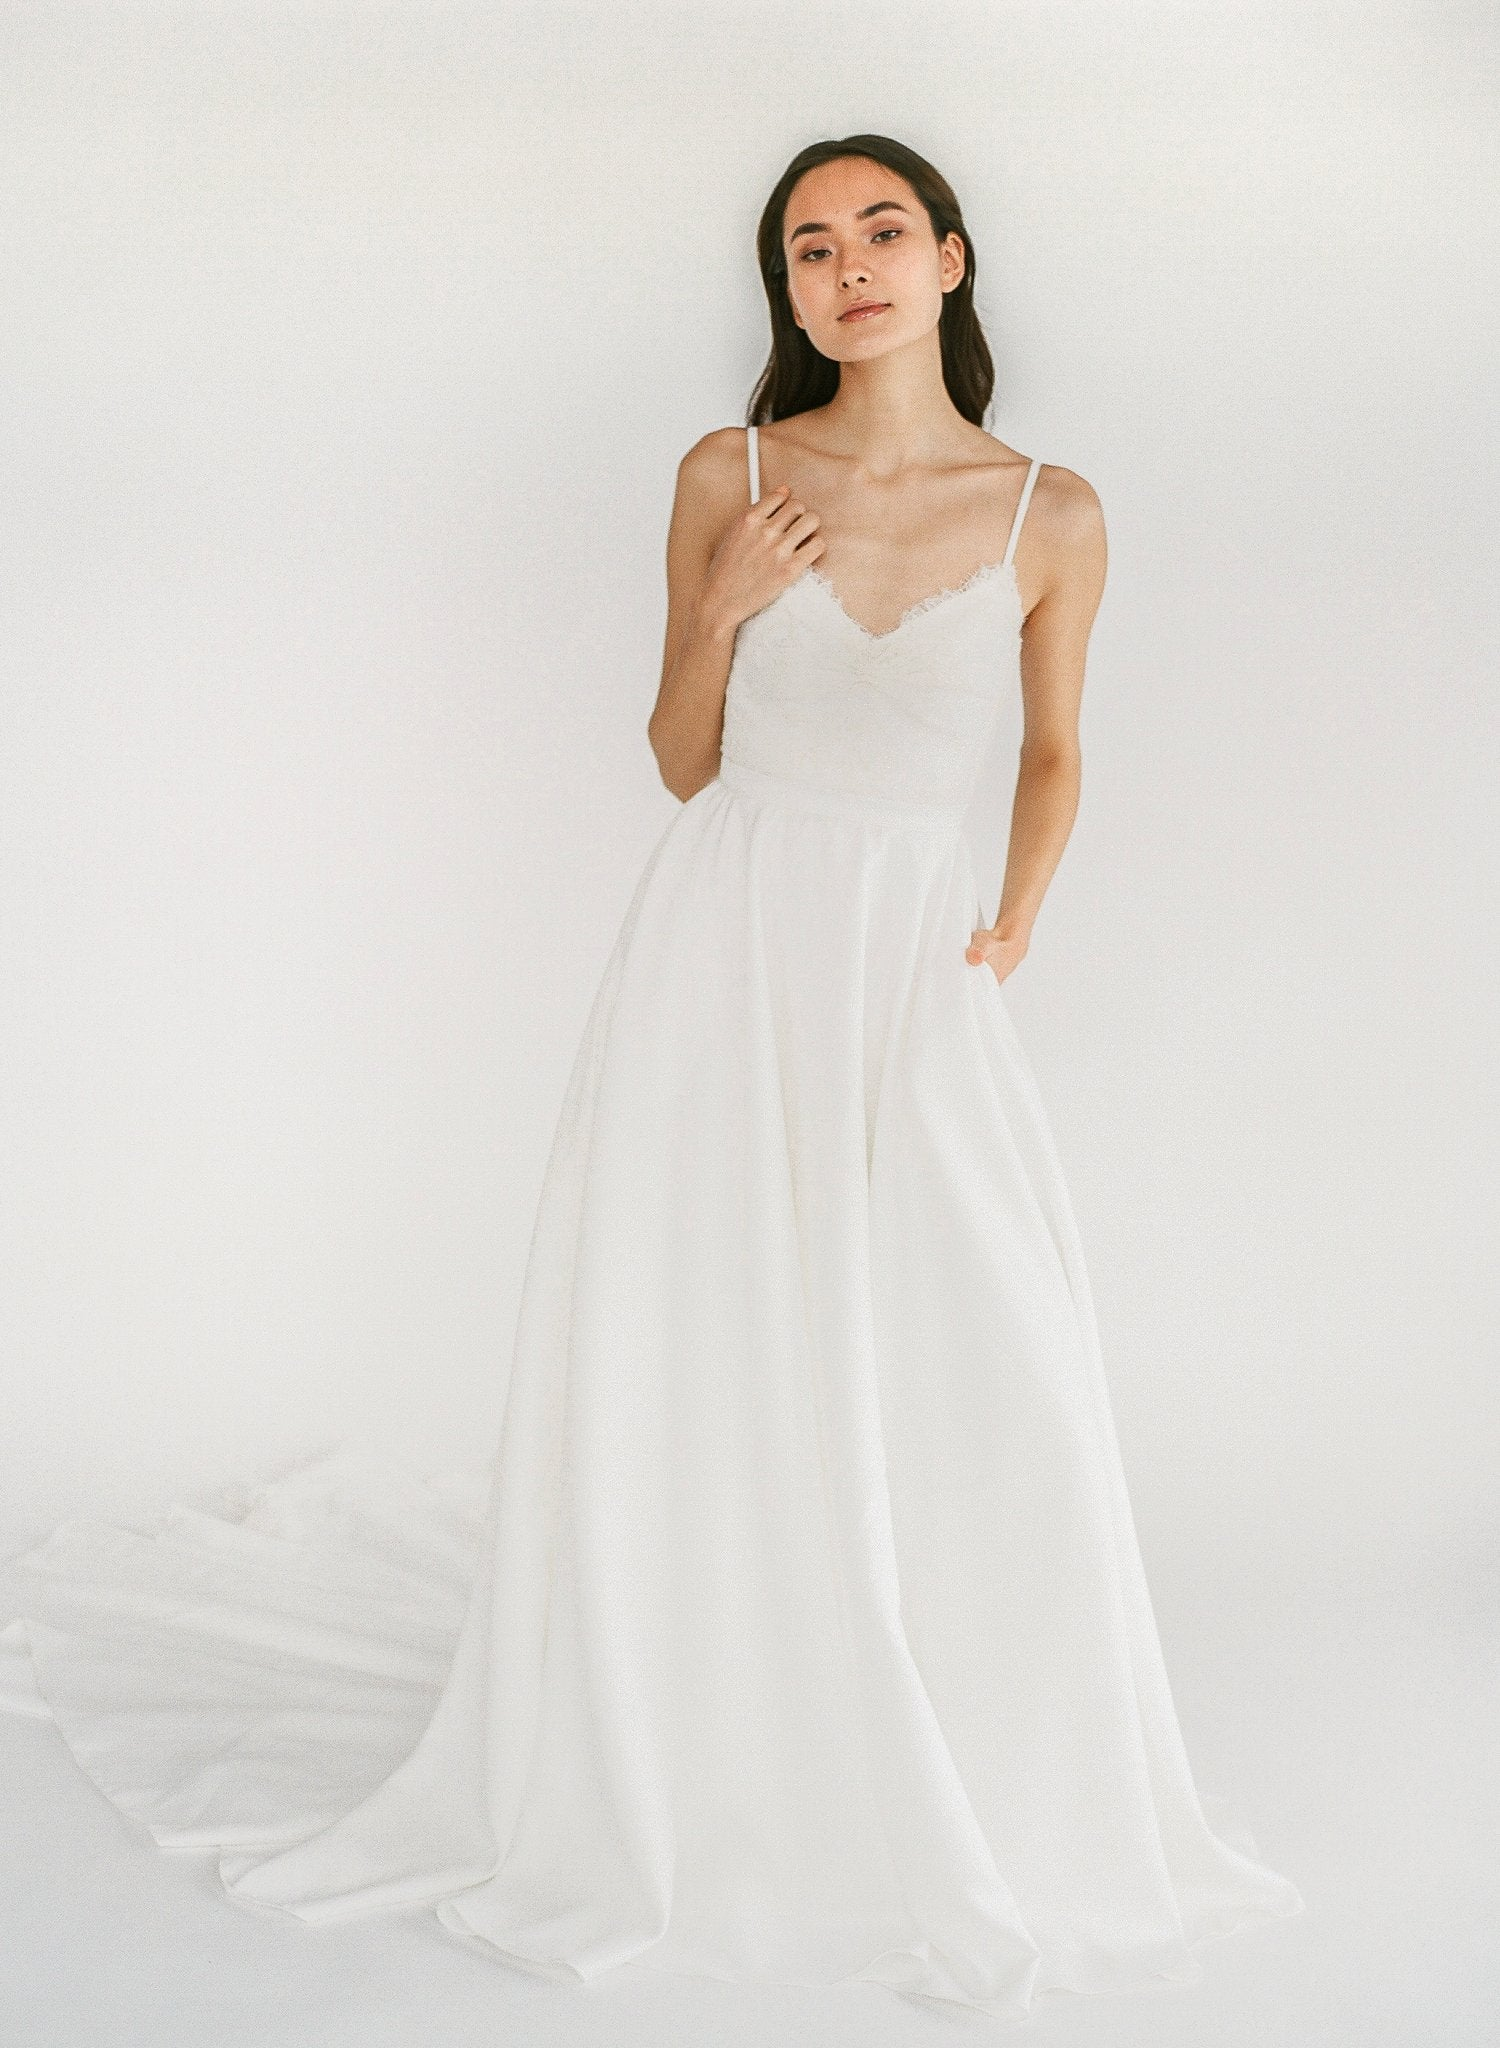 Romantic wedding dress with beaded lace, a button up back, and a crepe skirt with hidden pockets